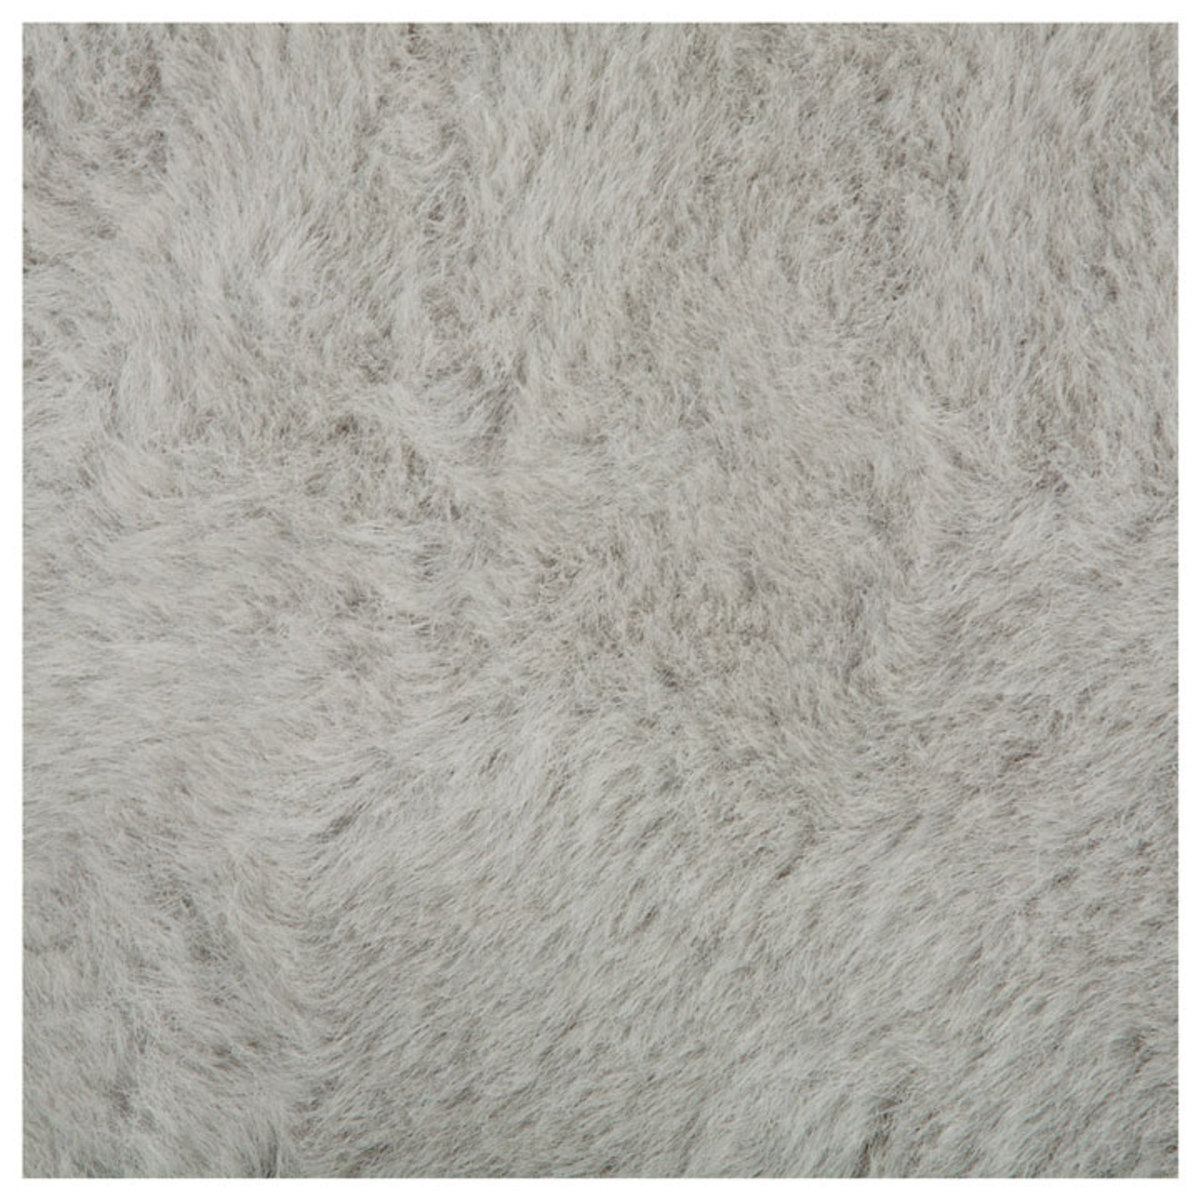 tapis rond fausse fourrure gris clair 140 cm rond gris achat vente tapis sur. Black Bedroom Furniture Sets. Home Design Ideas